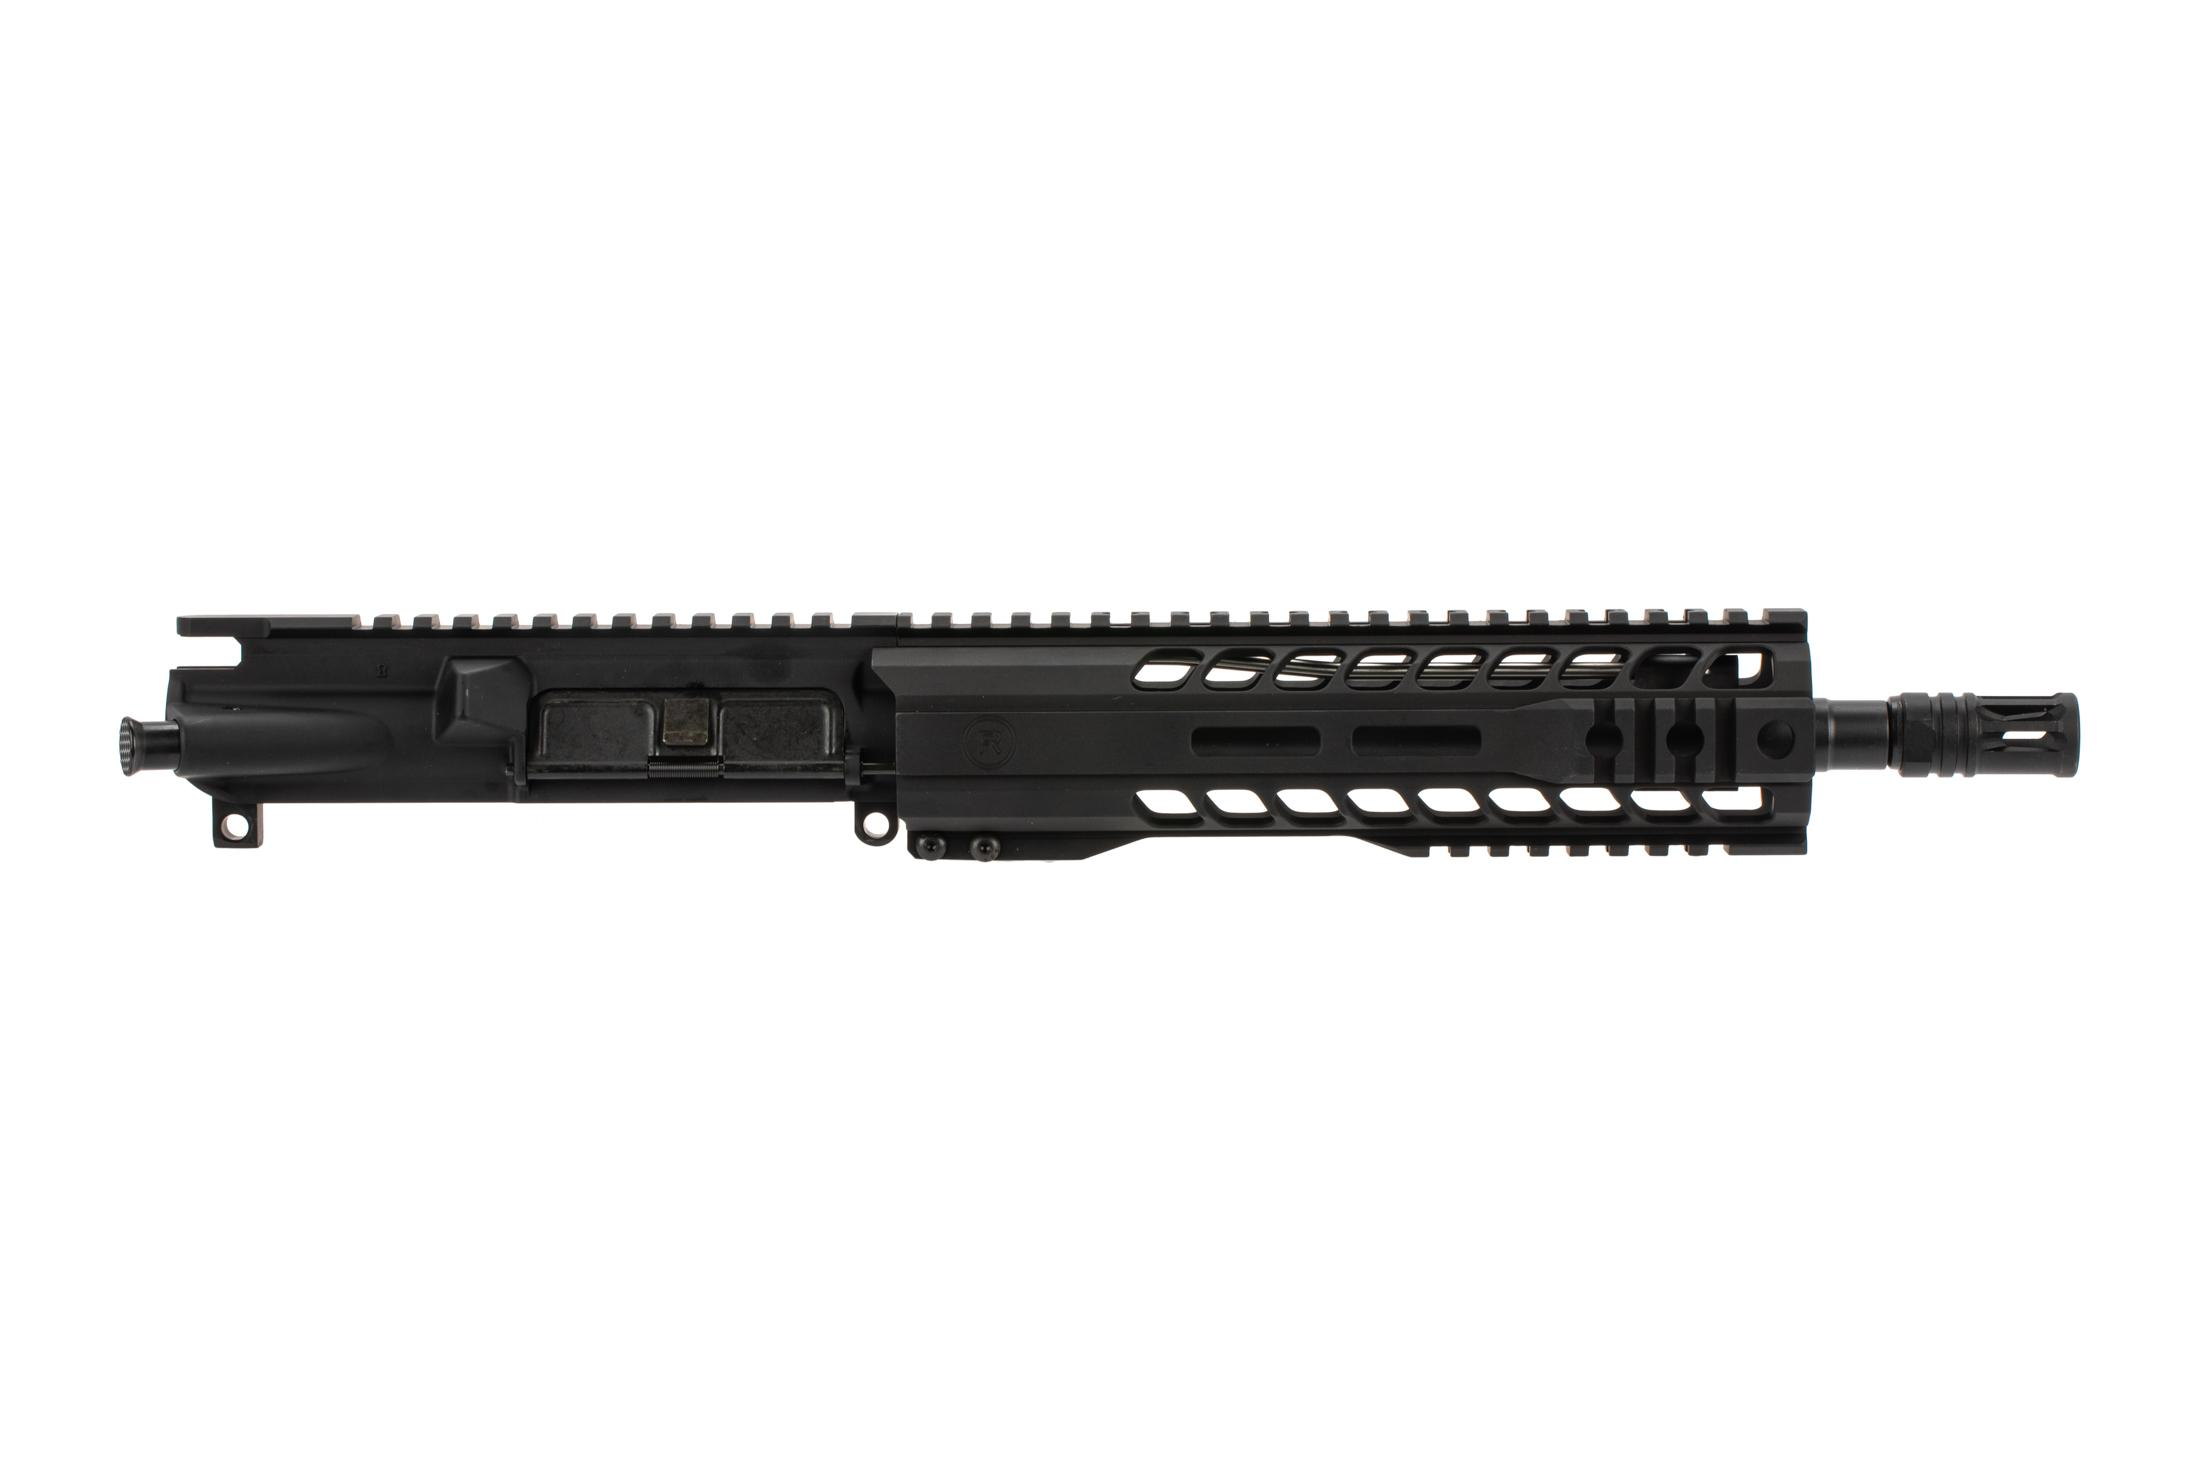 The Radical Firearms AR15 barreled upper 10.5 features the MHR M-LOK handguard